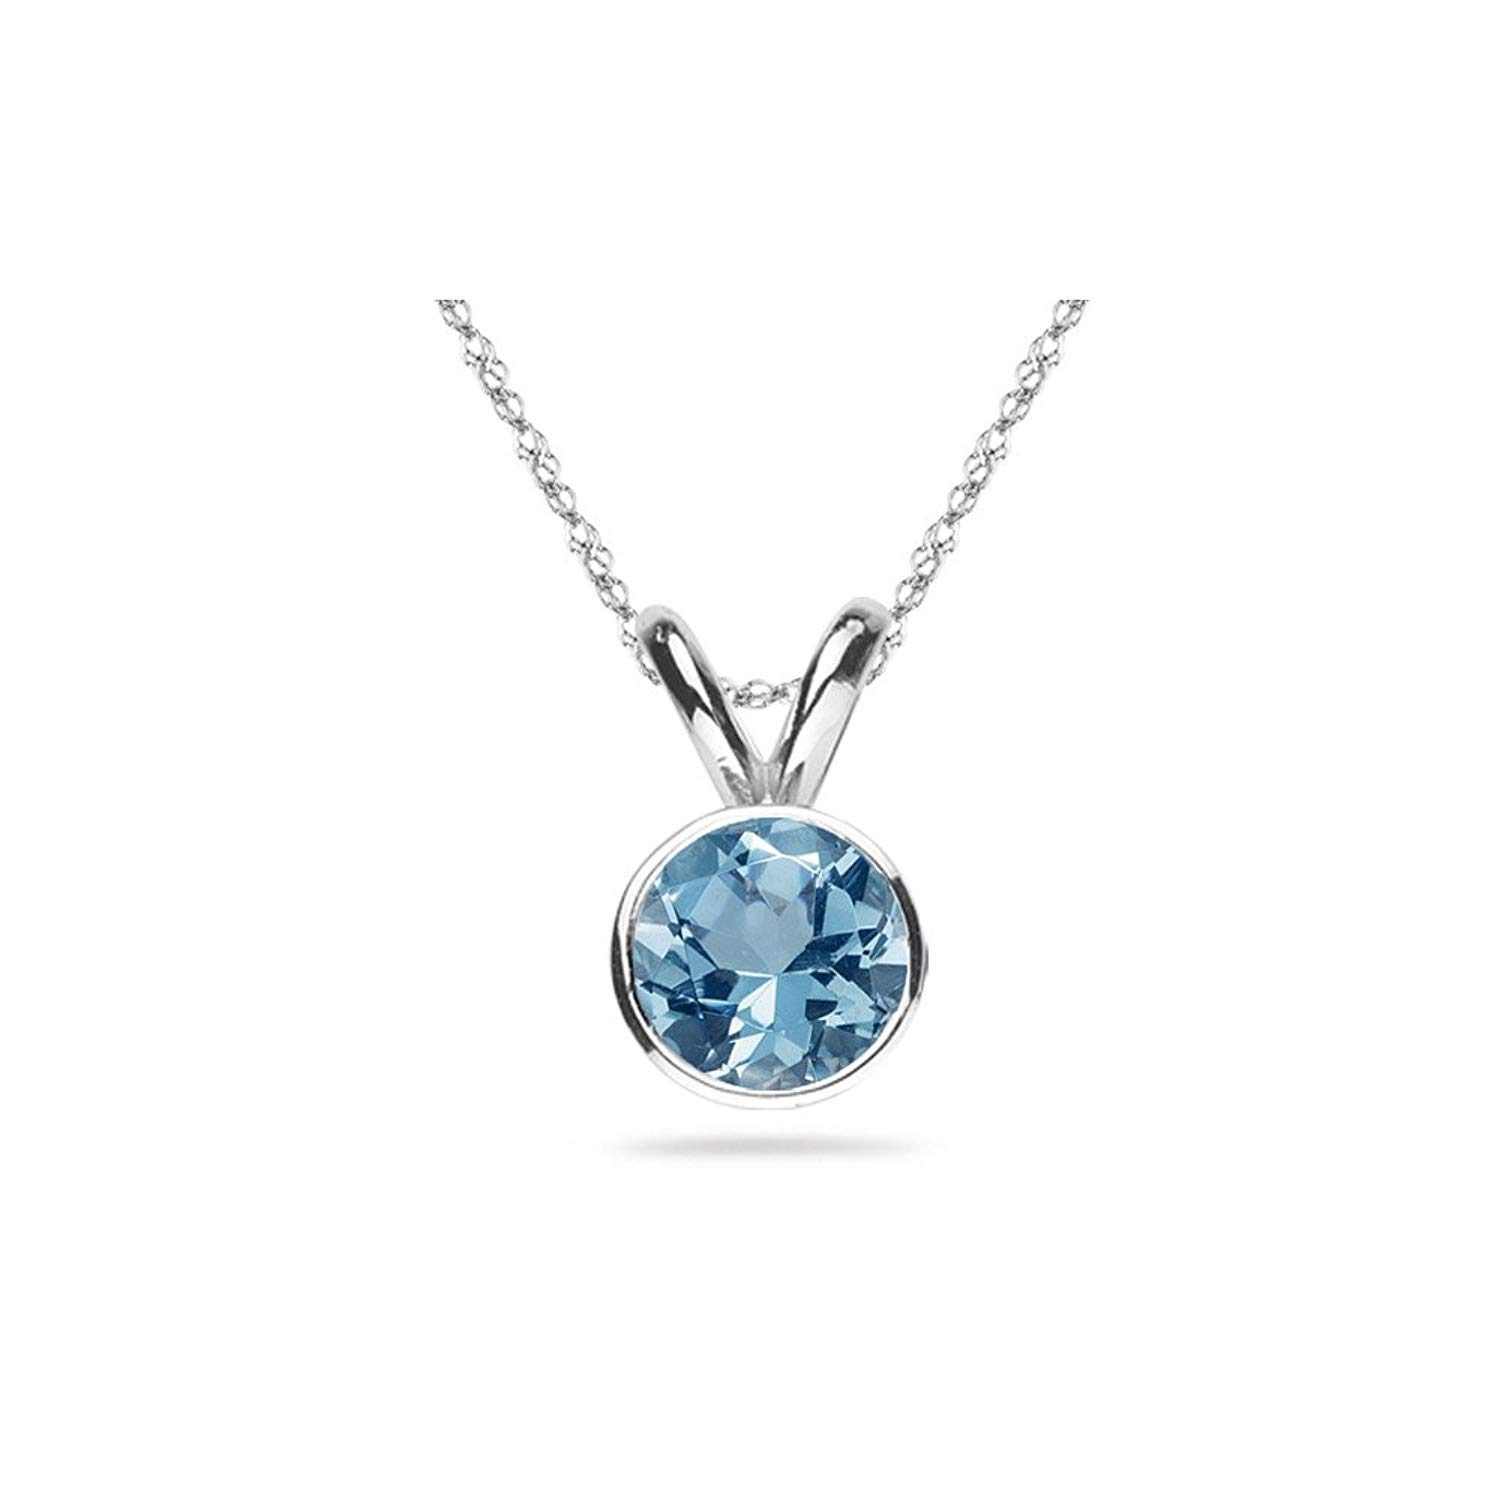 46caaf0409c Get Quotations · 2.00 Cts of 8 mm AAA Round Aquamarine Solitaire Pendant in 14K  White Gold